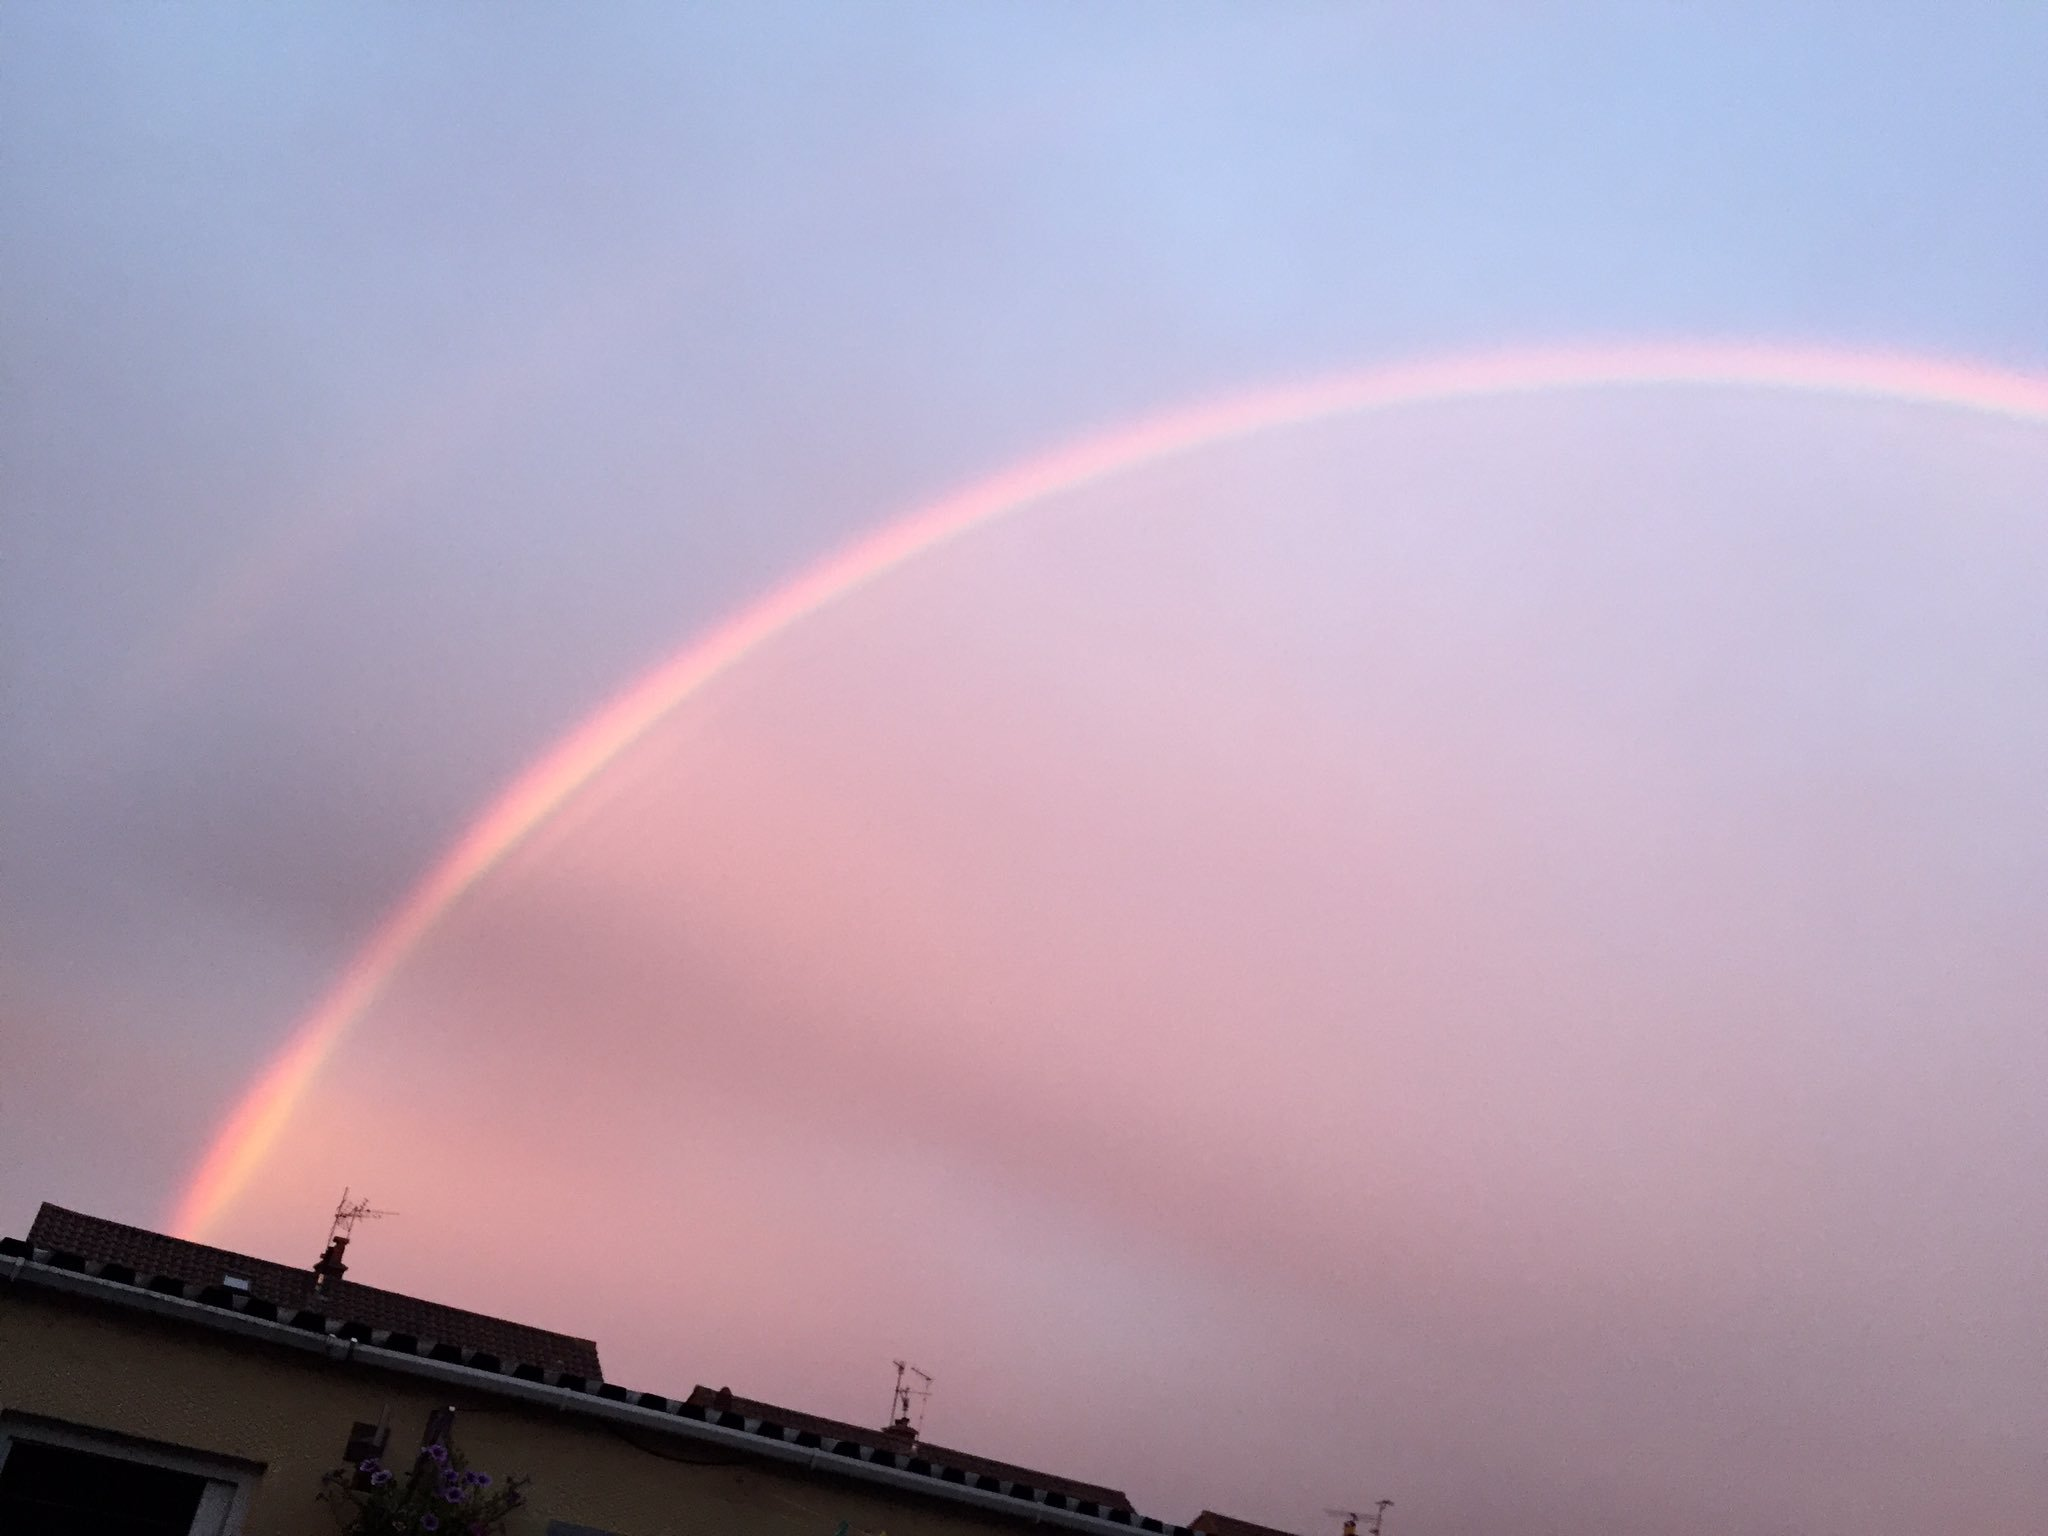 Thumbnail for Pink rainbow appears in England